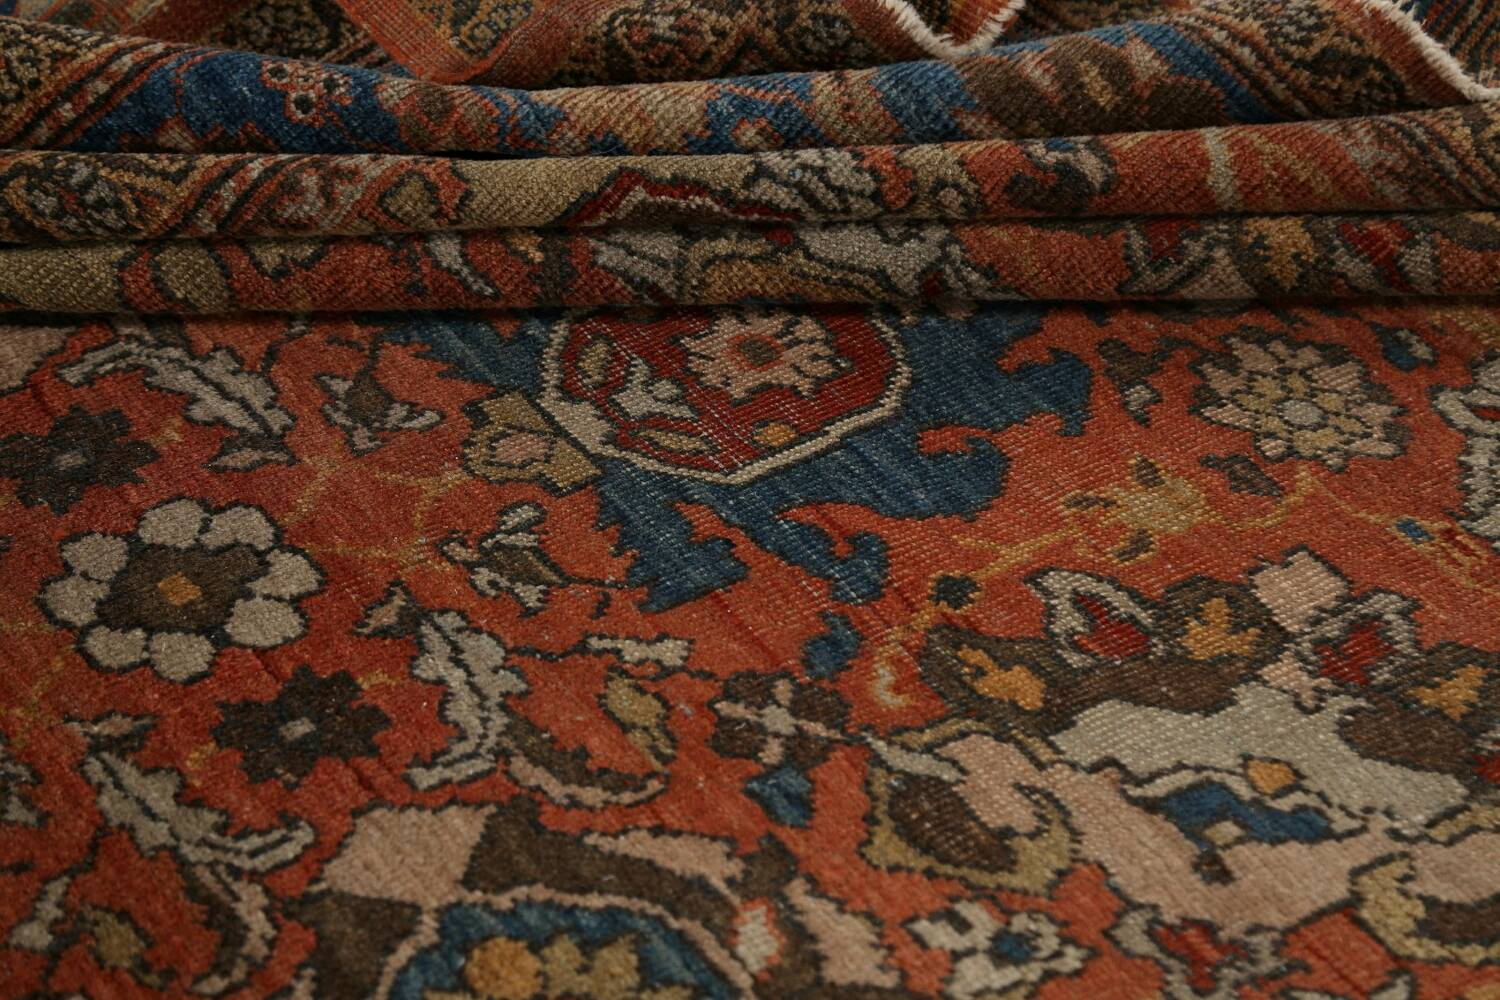 Pre-1900 Antique Vegetable Dye Sultanabad Persian Area Rug 9x12 image 23